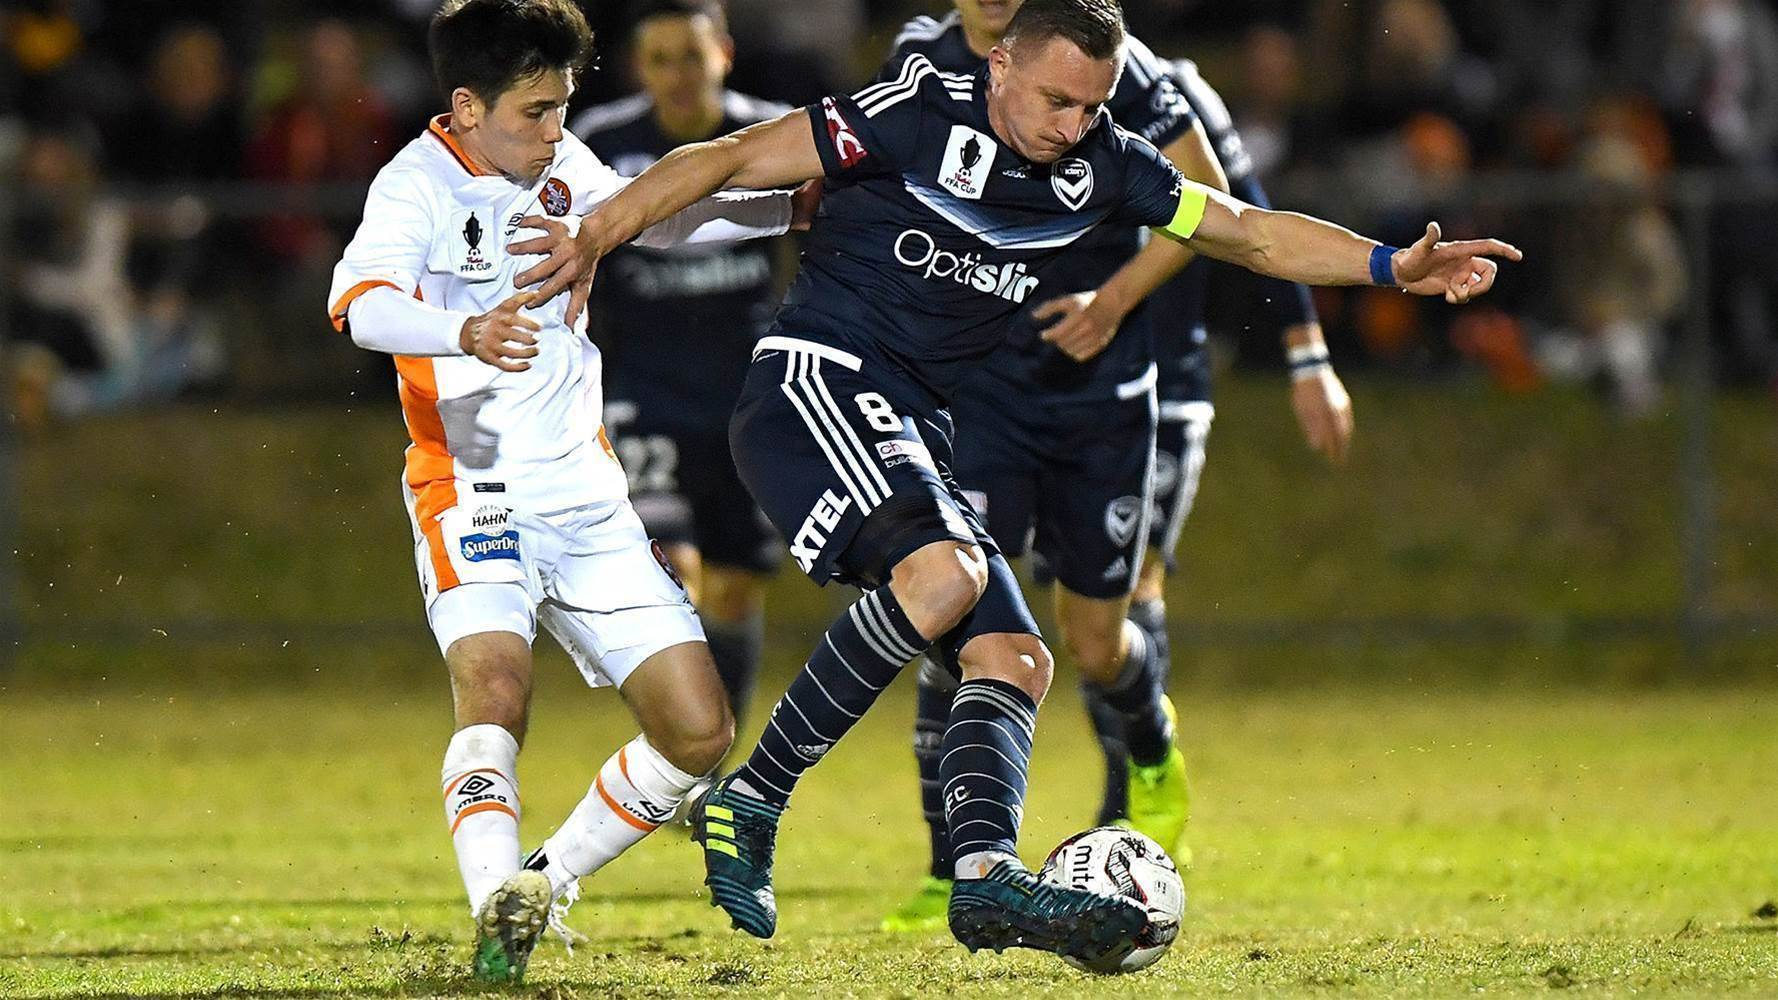 Muscat & Aloisi fume at sub-standard FFA Cup pitch